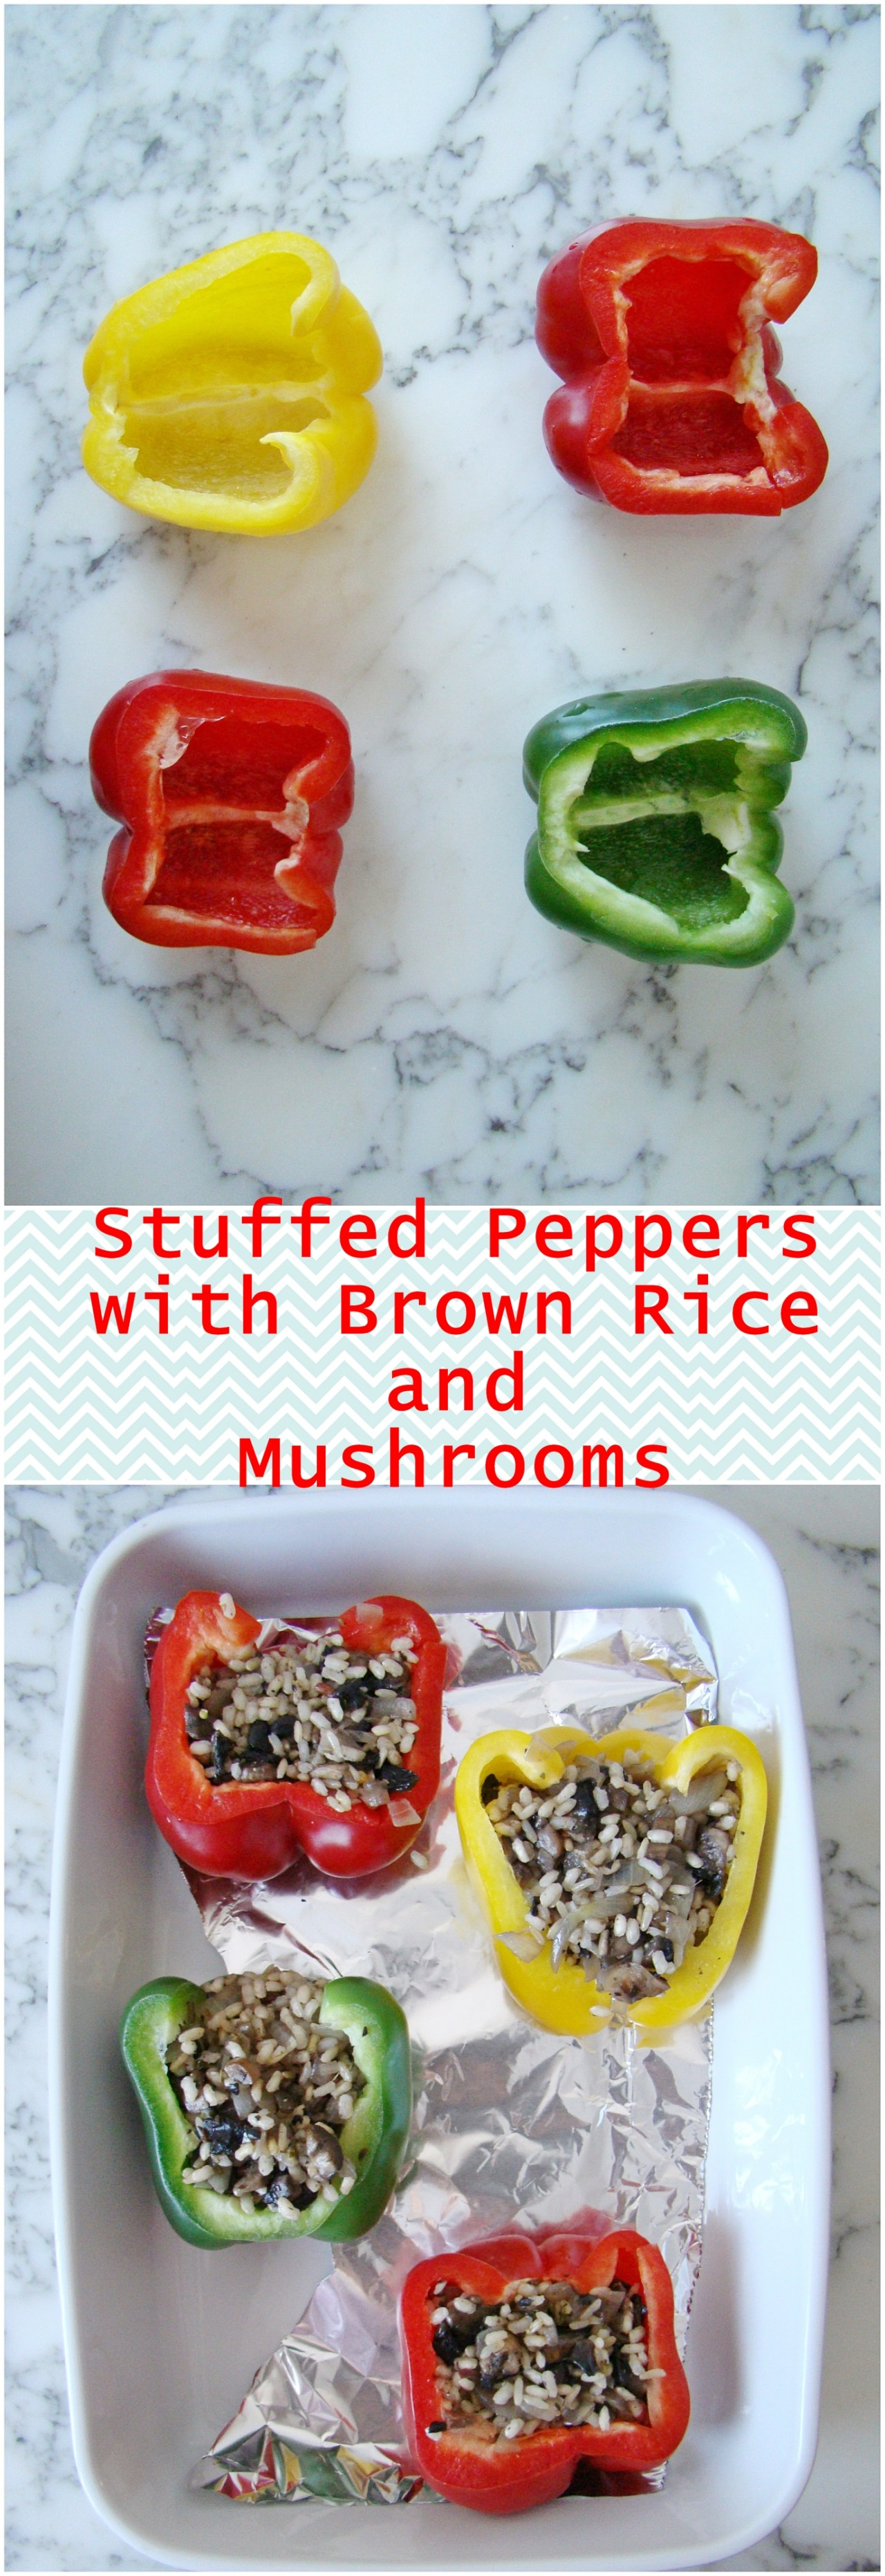 stuffed-peppers-with-brown-rice-and-mushrooms